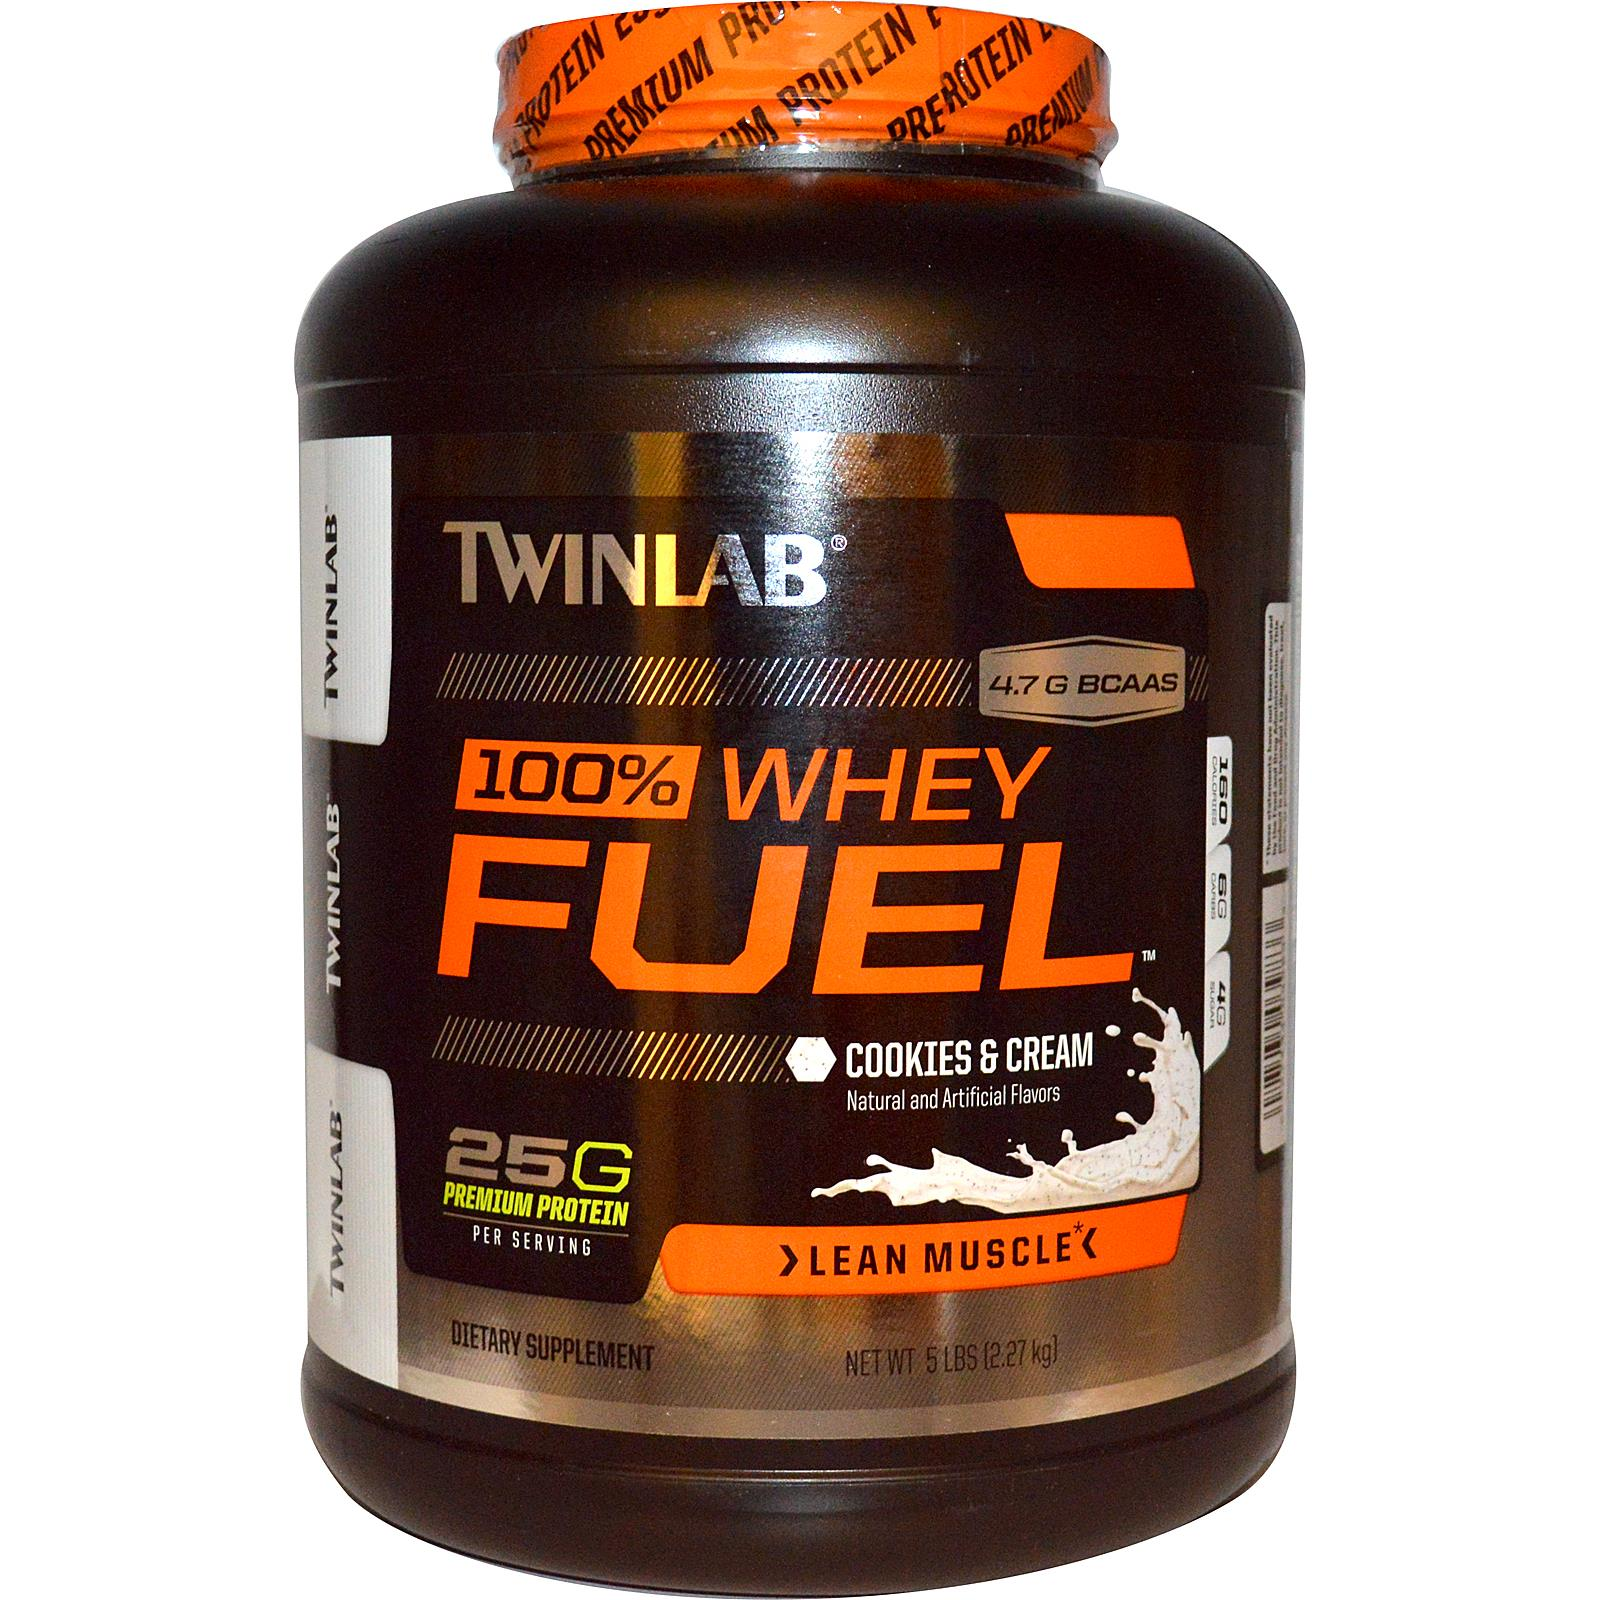 Twinlab 100% Whey Fuel - Cookies and Creme - 5 lb: HF